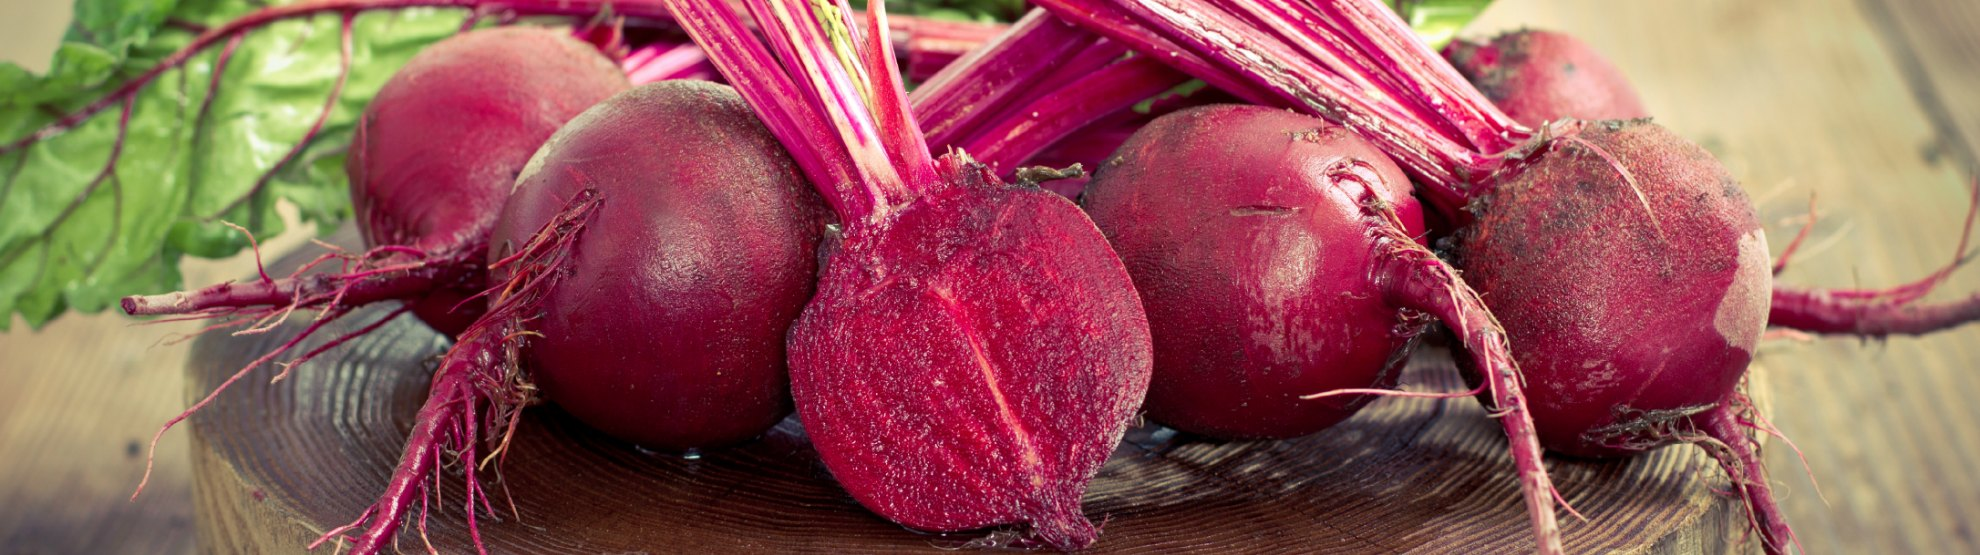 5 Top Health Benefits Of Raw Beetroot